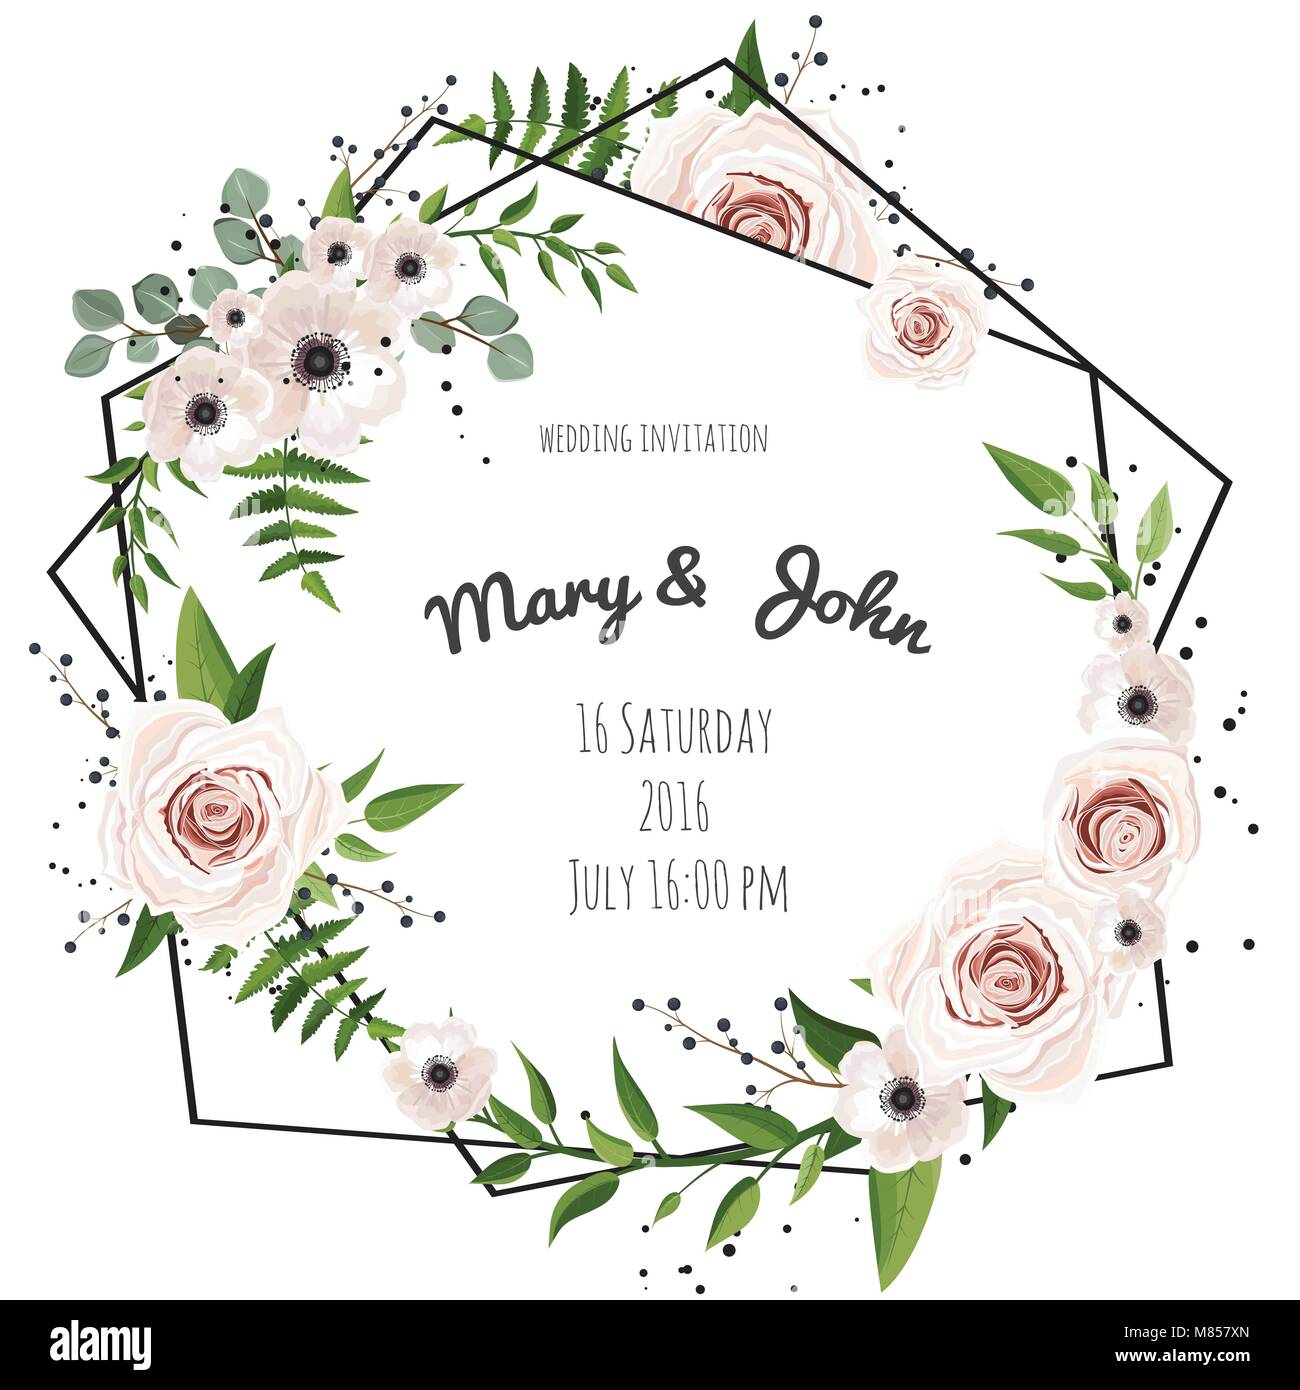 Wedding Invitation Modern Card Design Green Eucalyptus Leaves Flower Rose Anemone Vector Elegant Watercolor Rustic Template Frame Border With Co